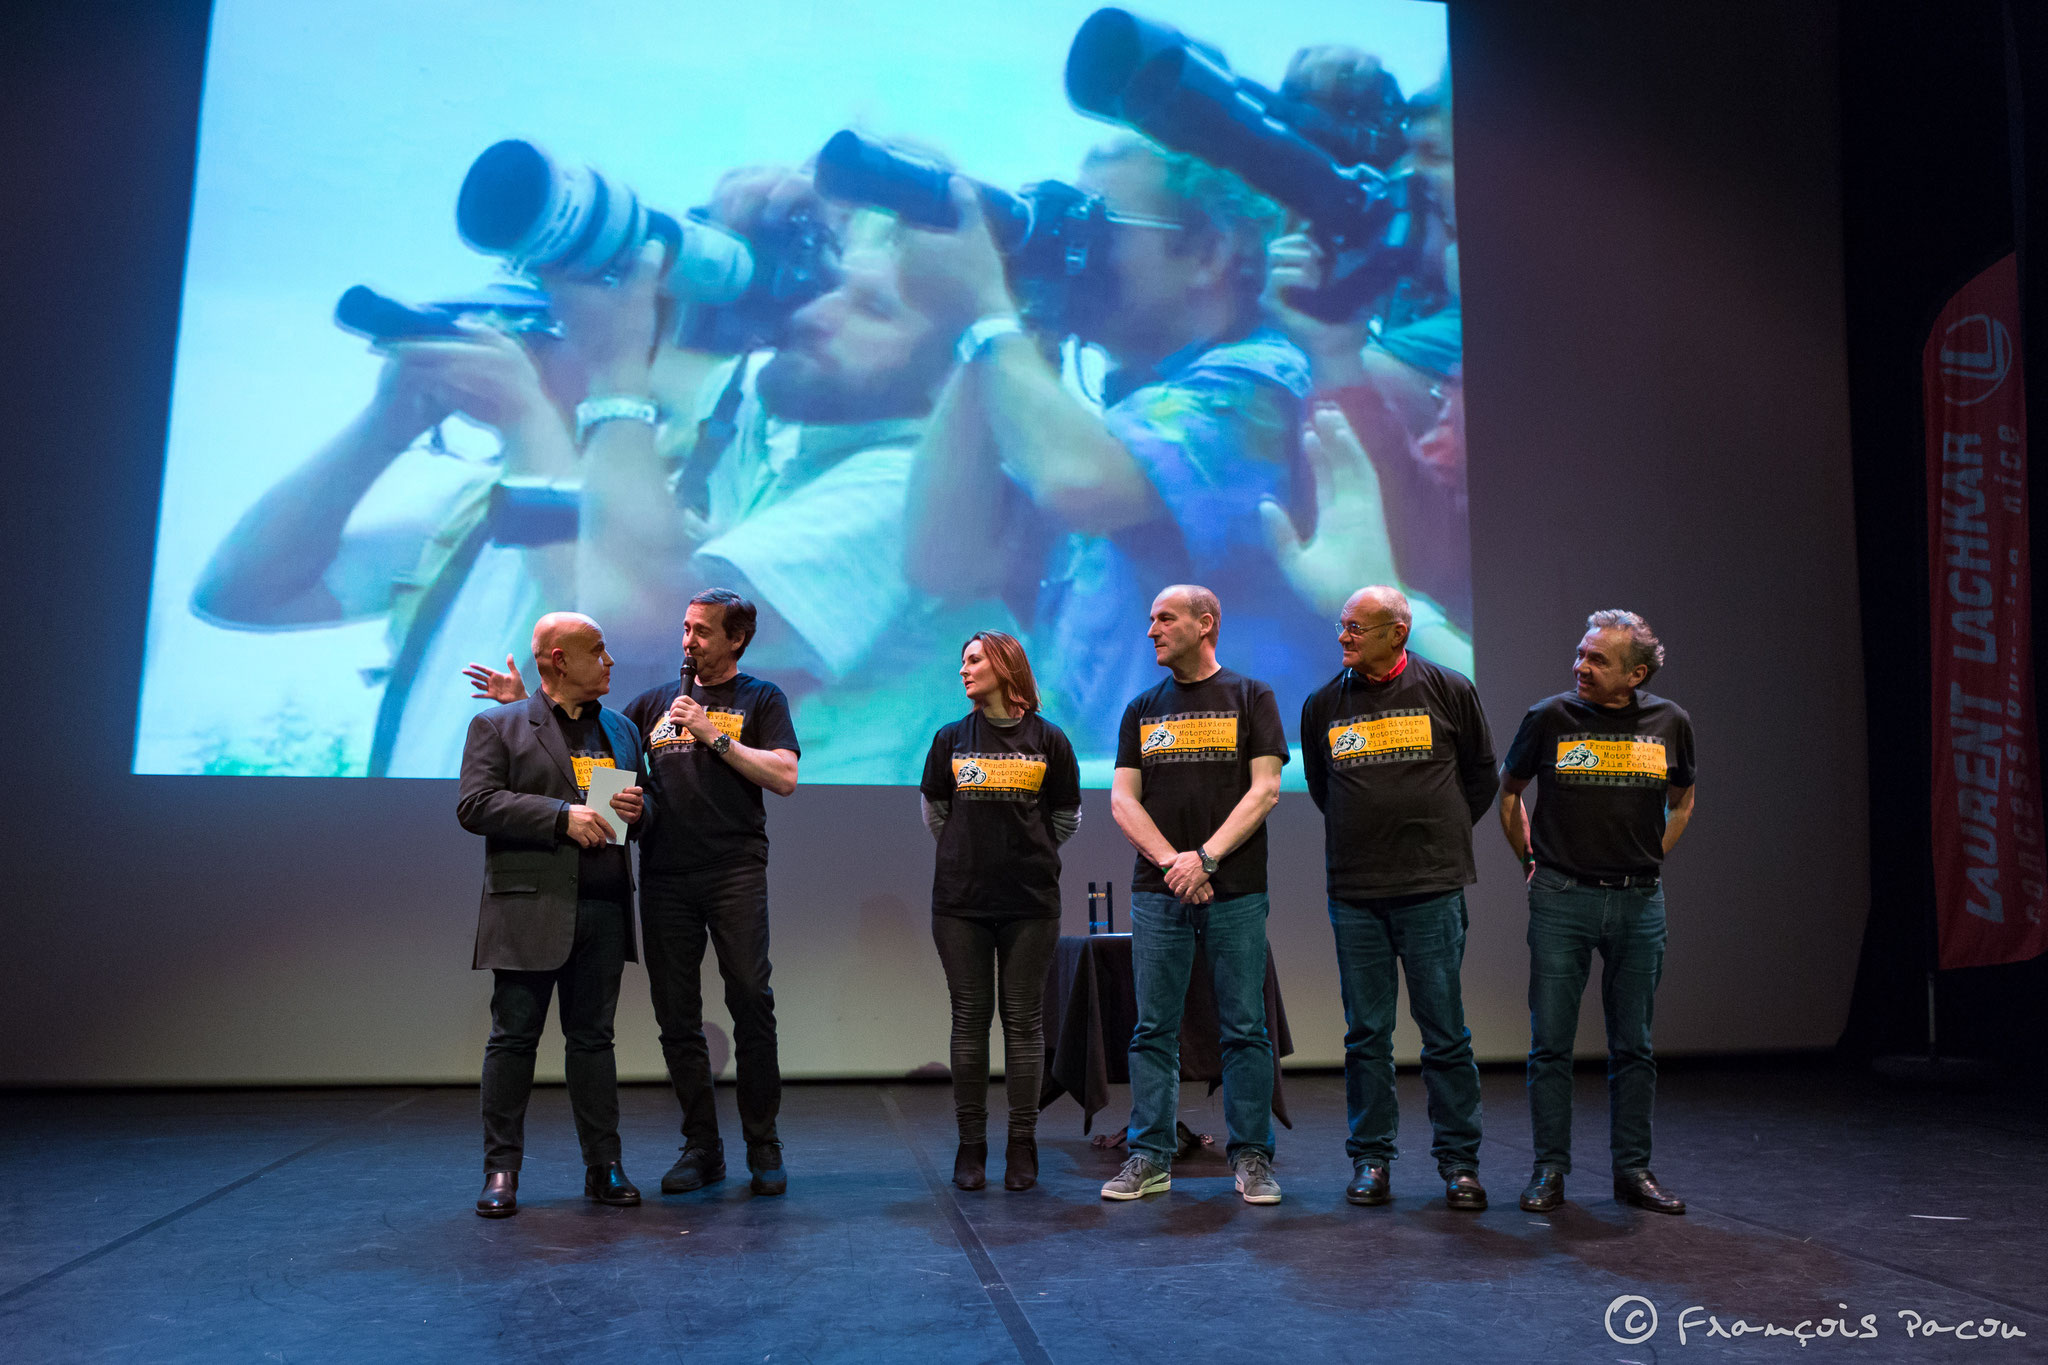 Left to right. Olivier Wagner and the jury, Freddie Spencer, Alexandra Catti, Didier Constant, Gérard Delio, Eric Saul.